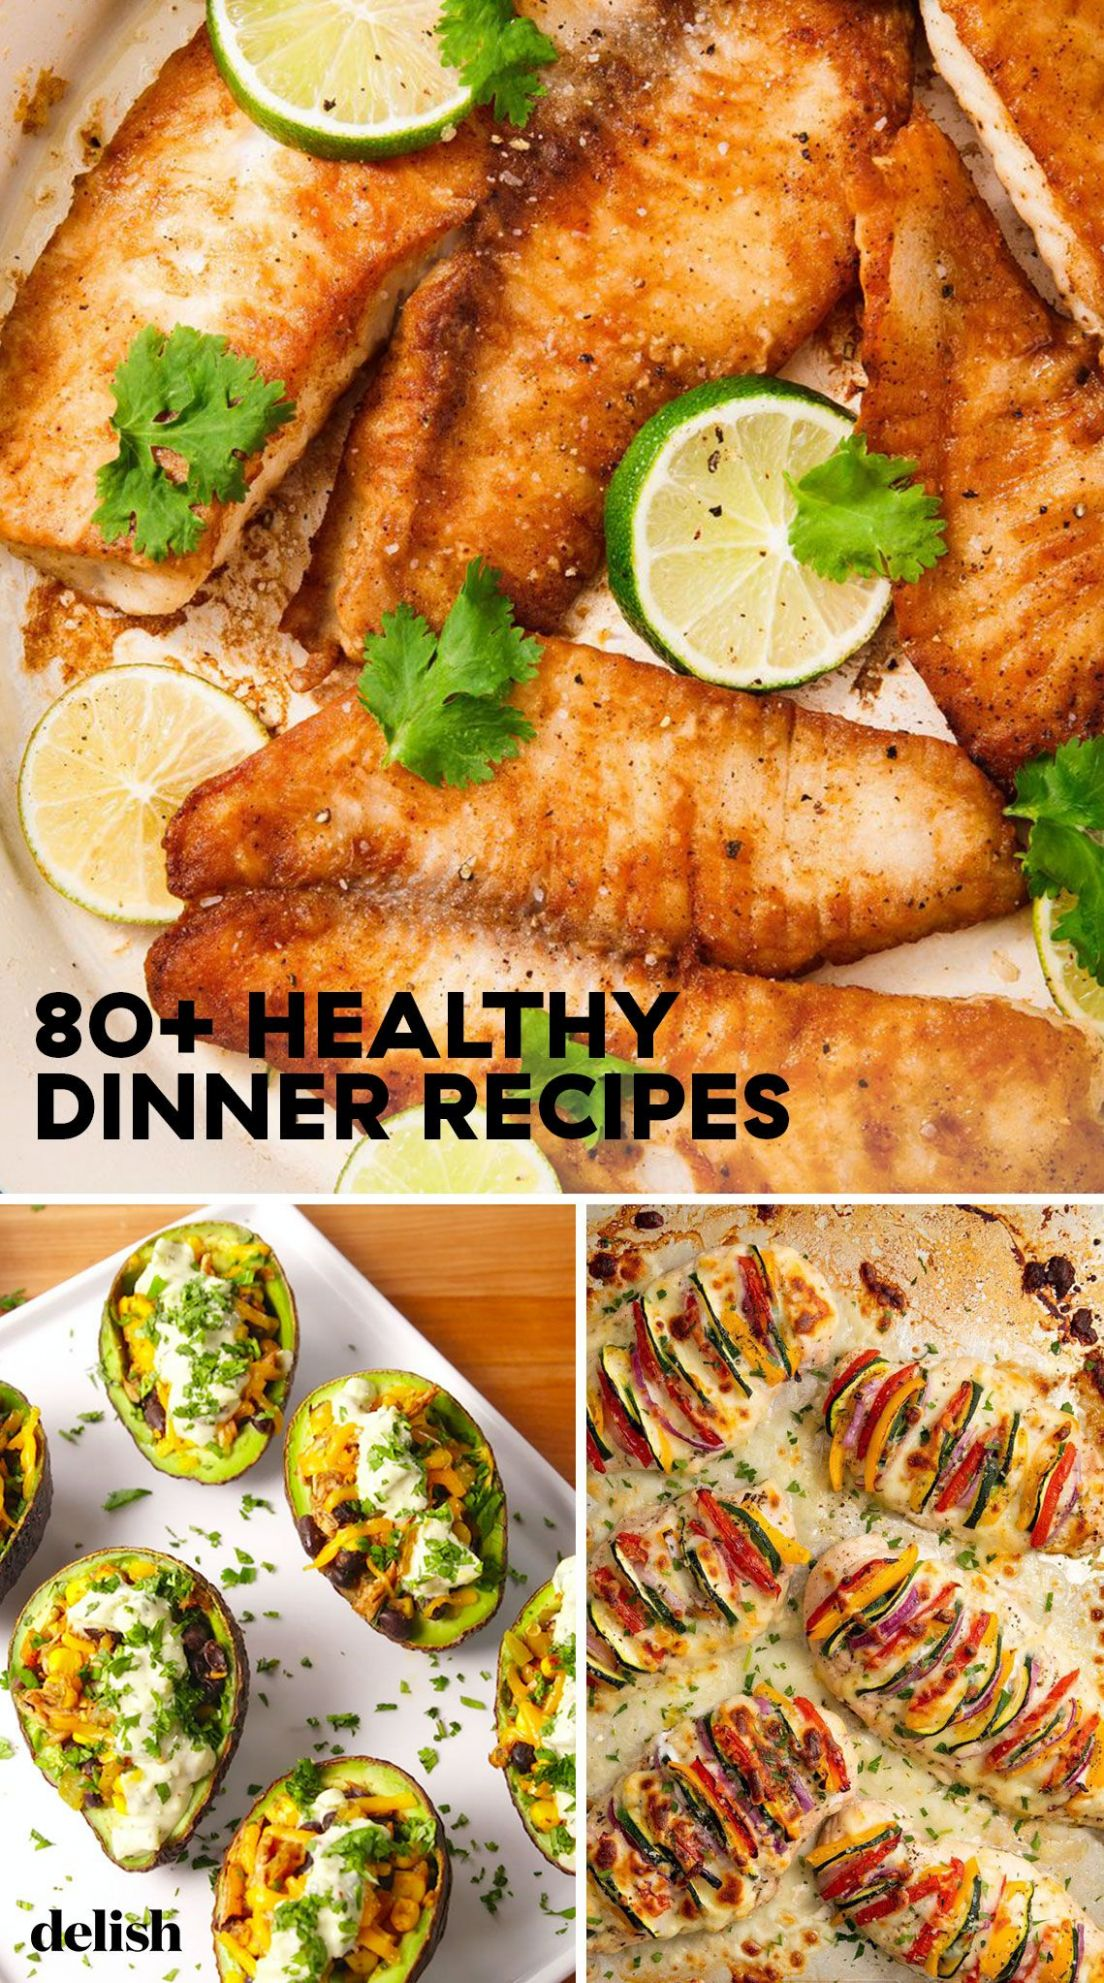 10+ Easy Healthy Dinner Ideas - Best Recipes for Healthy Dinners - Healthy Recipes Easy Lunch